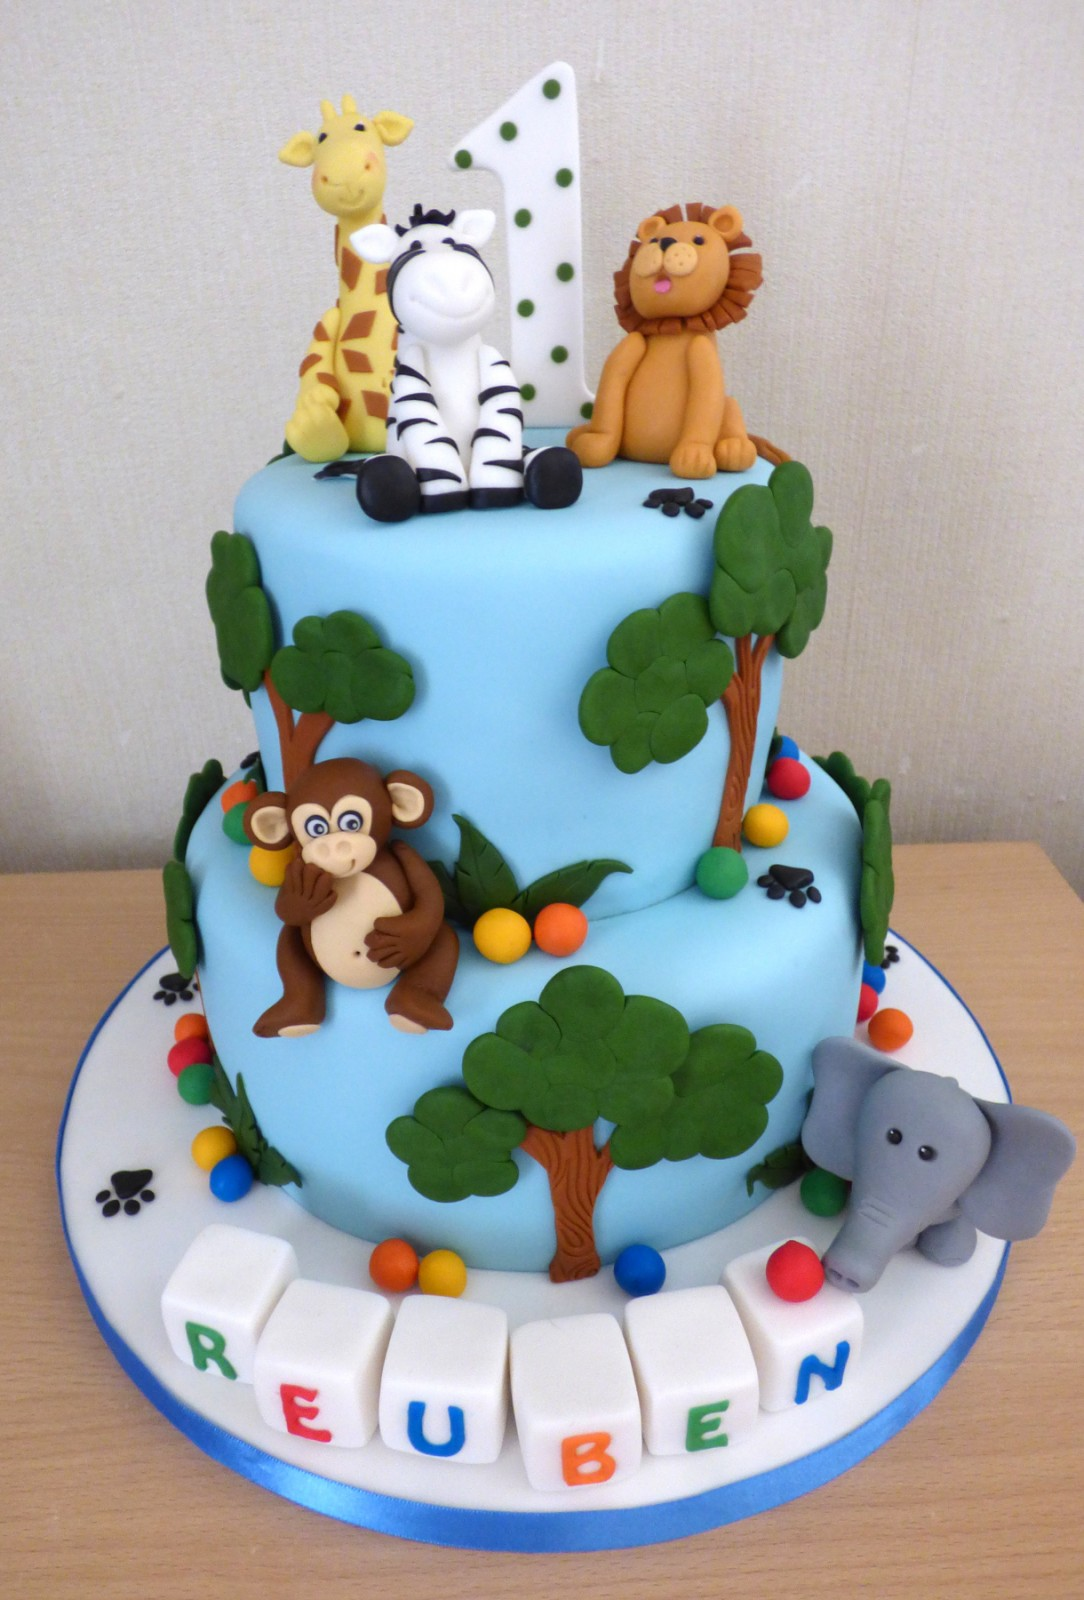 Awe Inspiring 2 Tier Jungle Animal Themed 1St Birthday Cake Susies Cakes Personalised Birthday Cards Veneteletsinfo